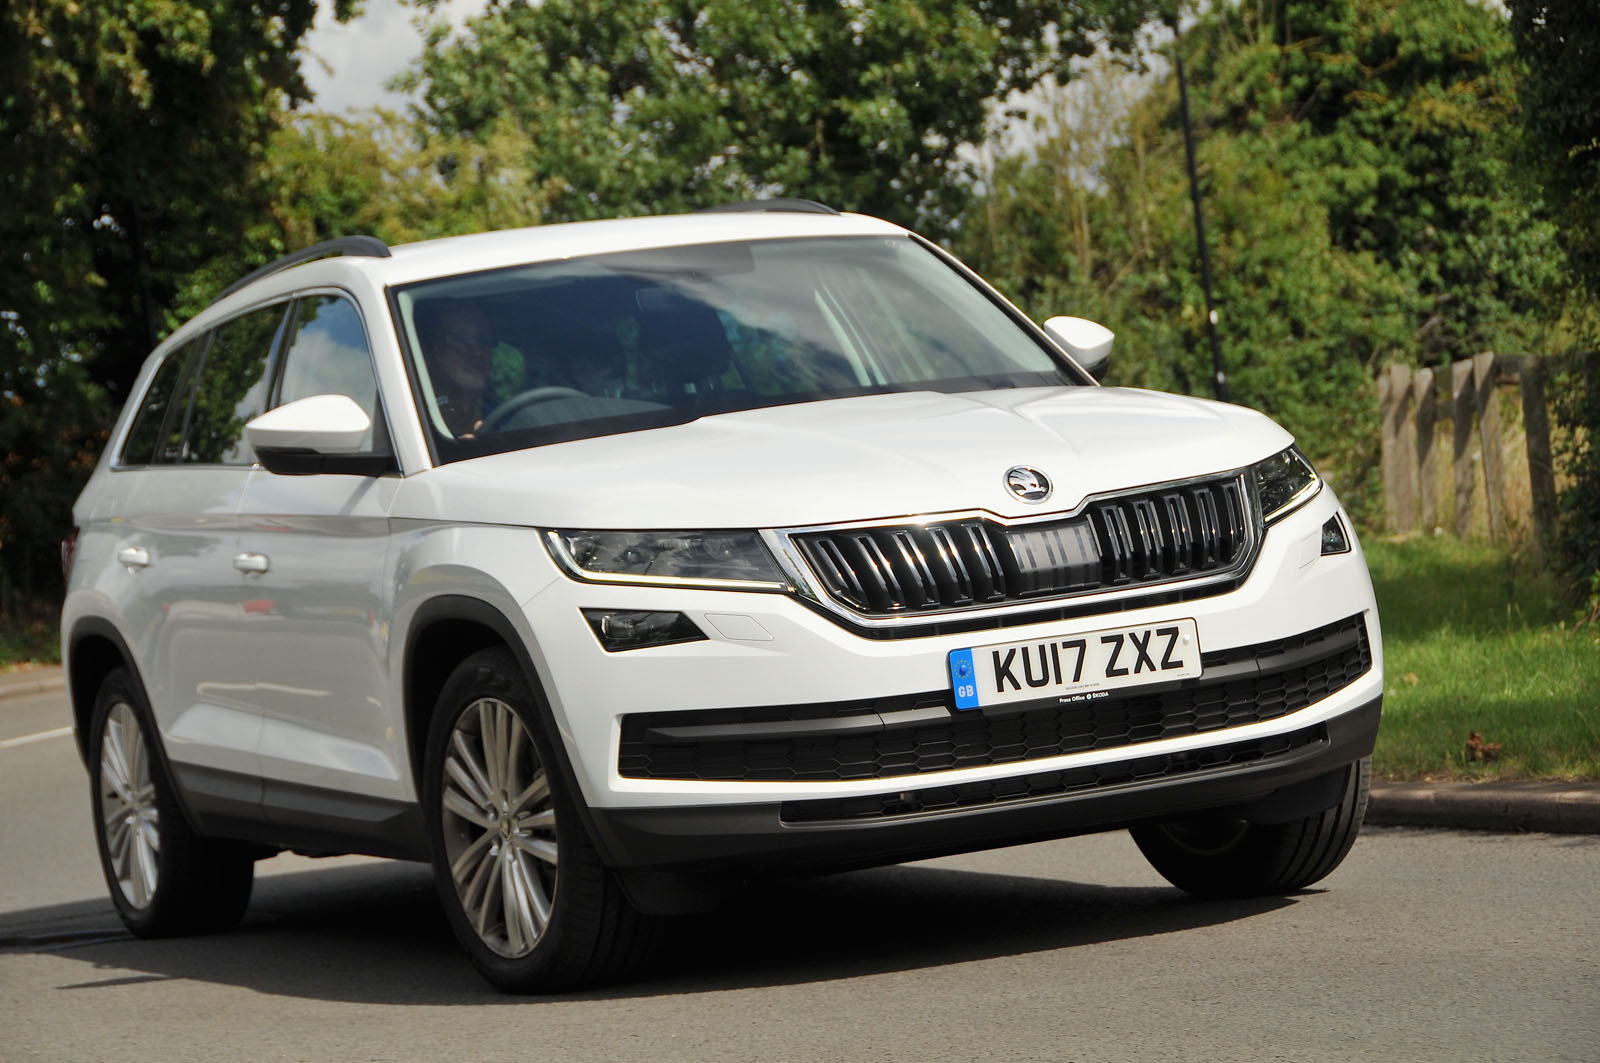 b68c9a40365 Skoda Kodiaq long-term review - twelve months with the seven-seat ...